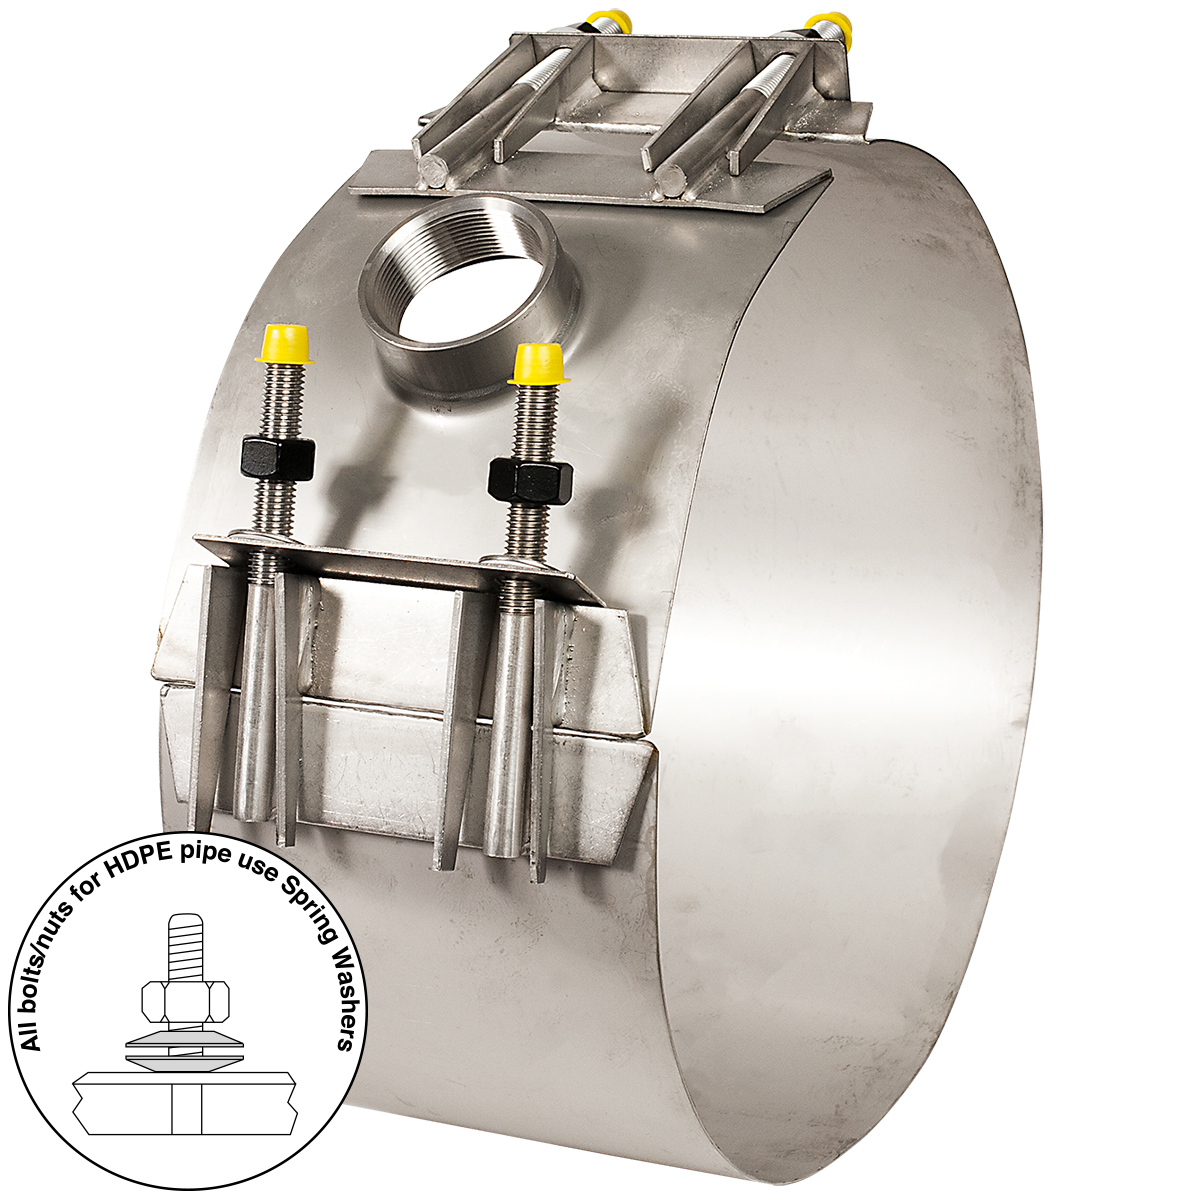 305-H - All stainless steel service saddle for HDPE pipe